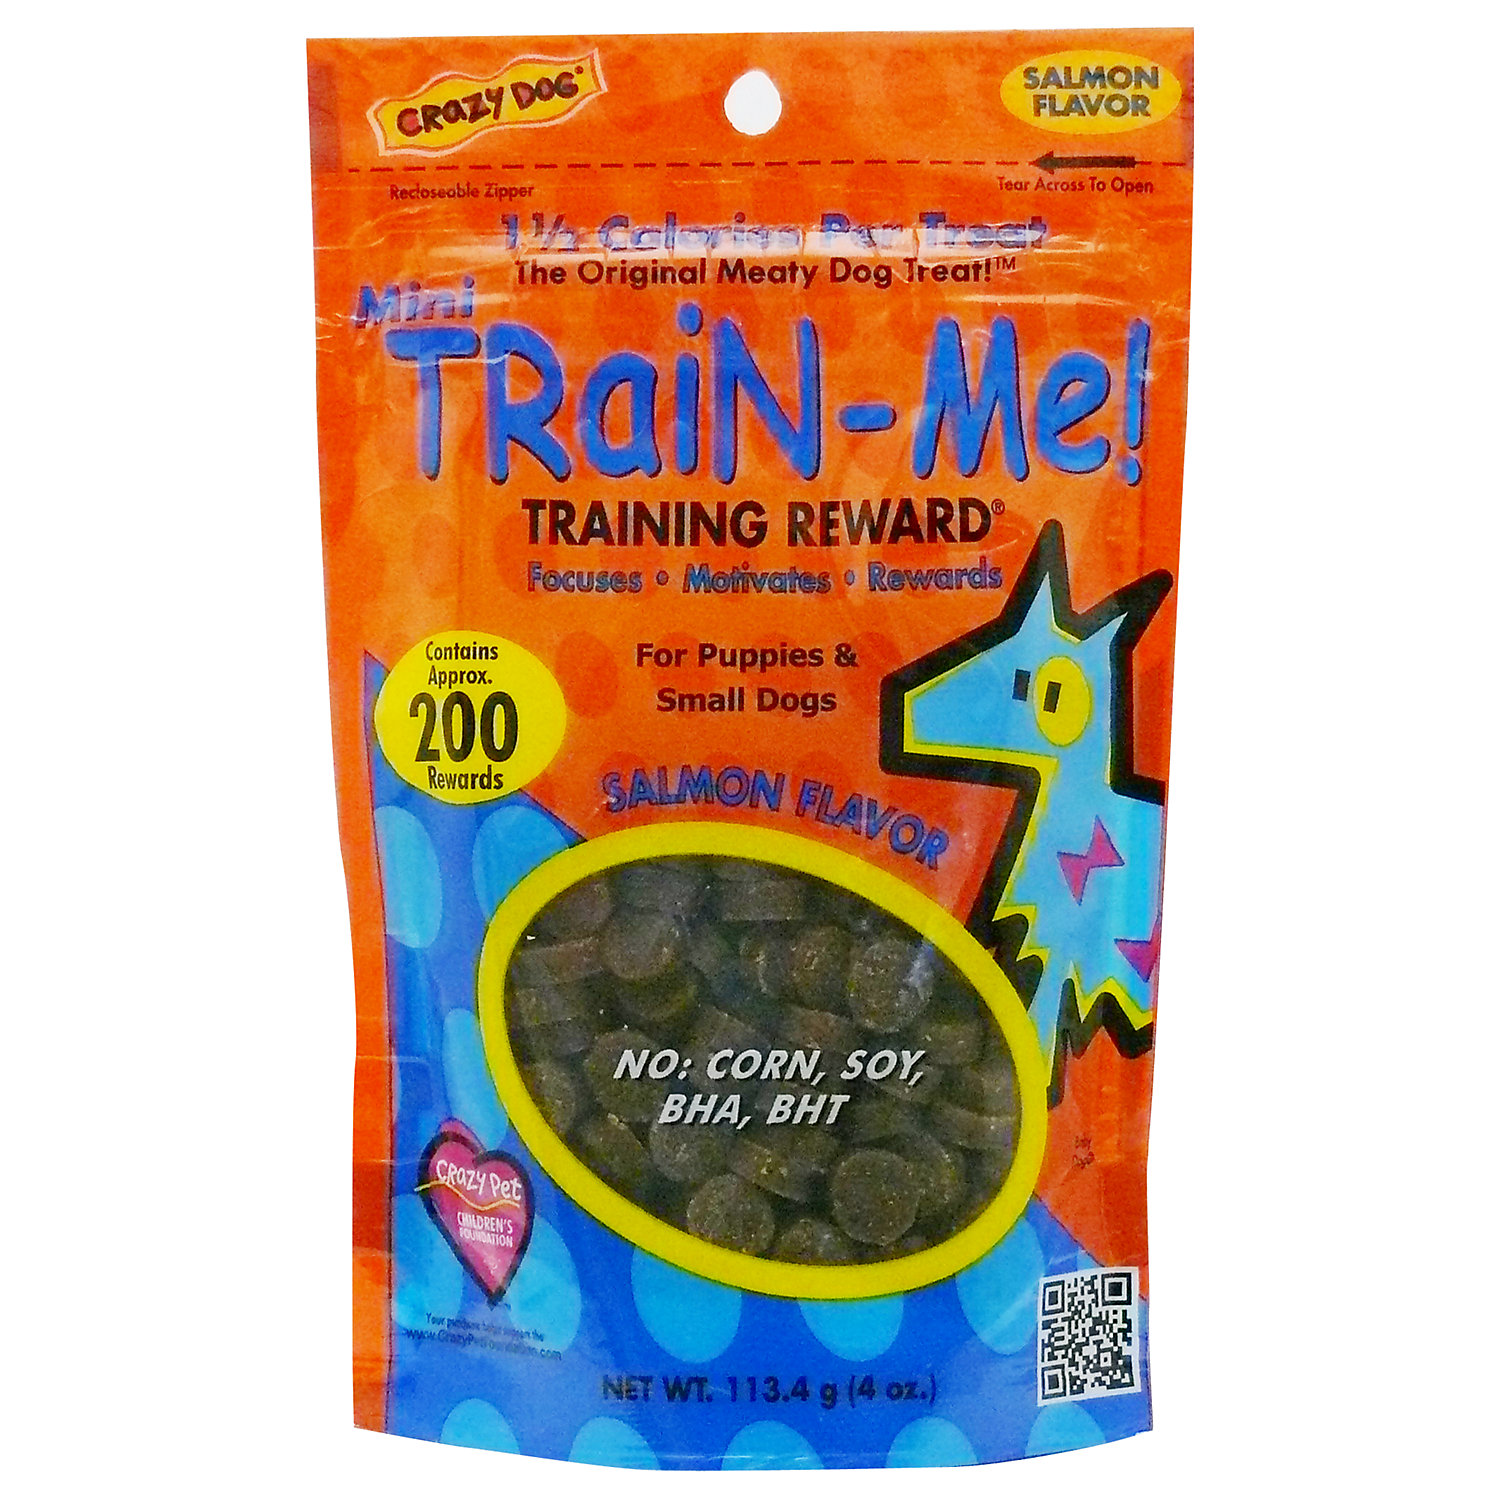 Crazy Dog Mini Train Me Salmon Dog Treats 4 Oz.